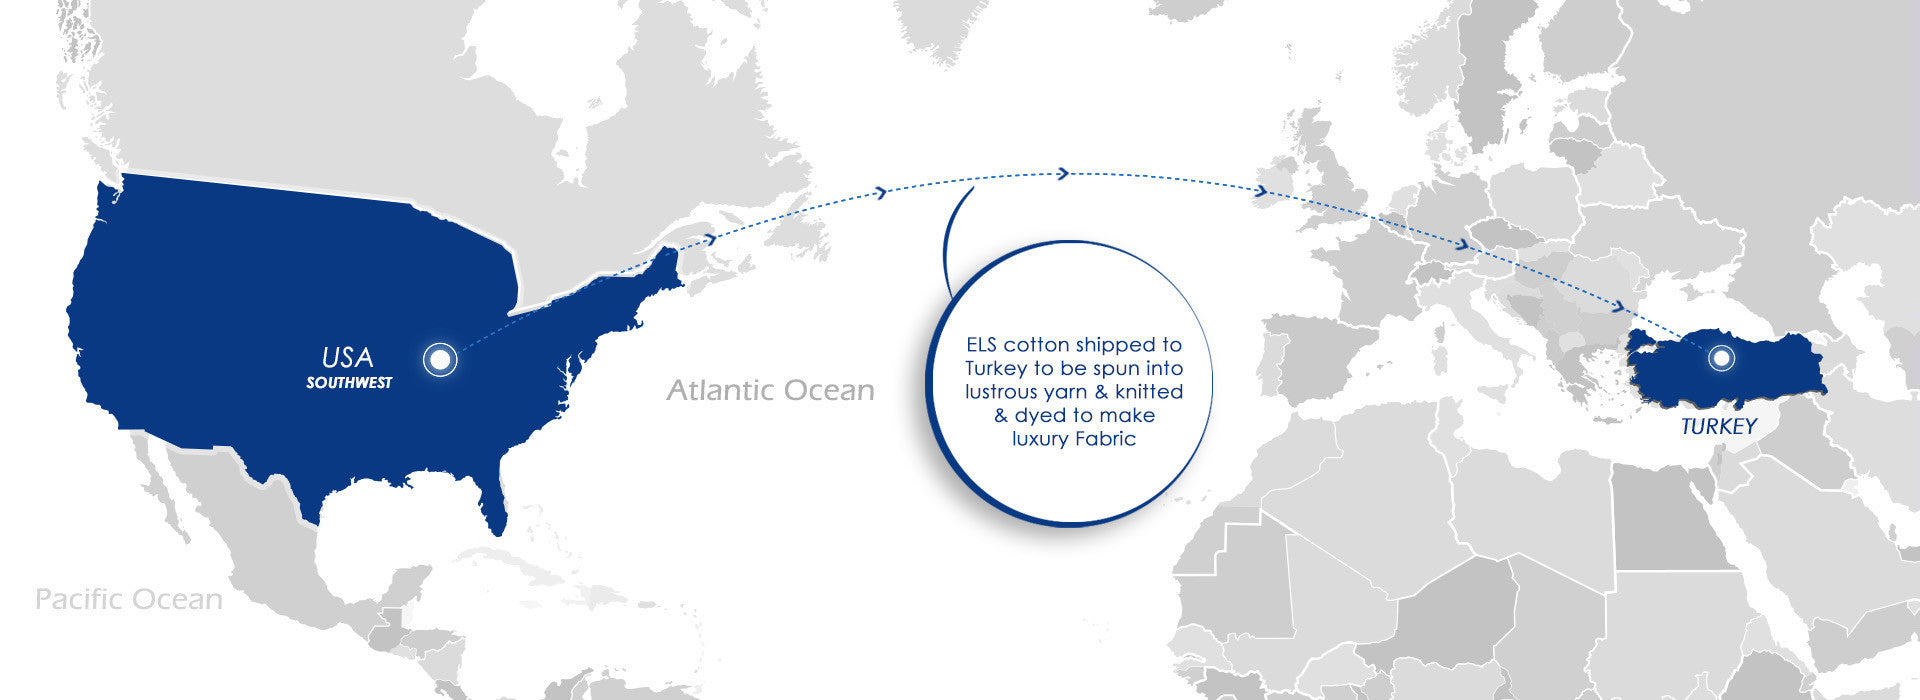 ELS cotton transported from USA to Turkey